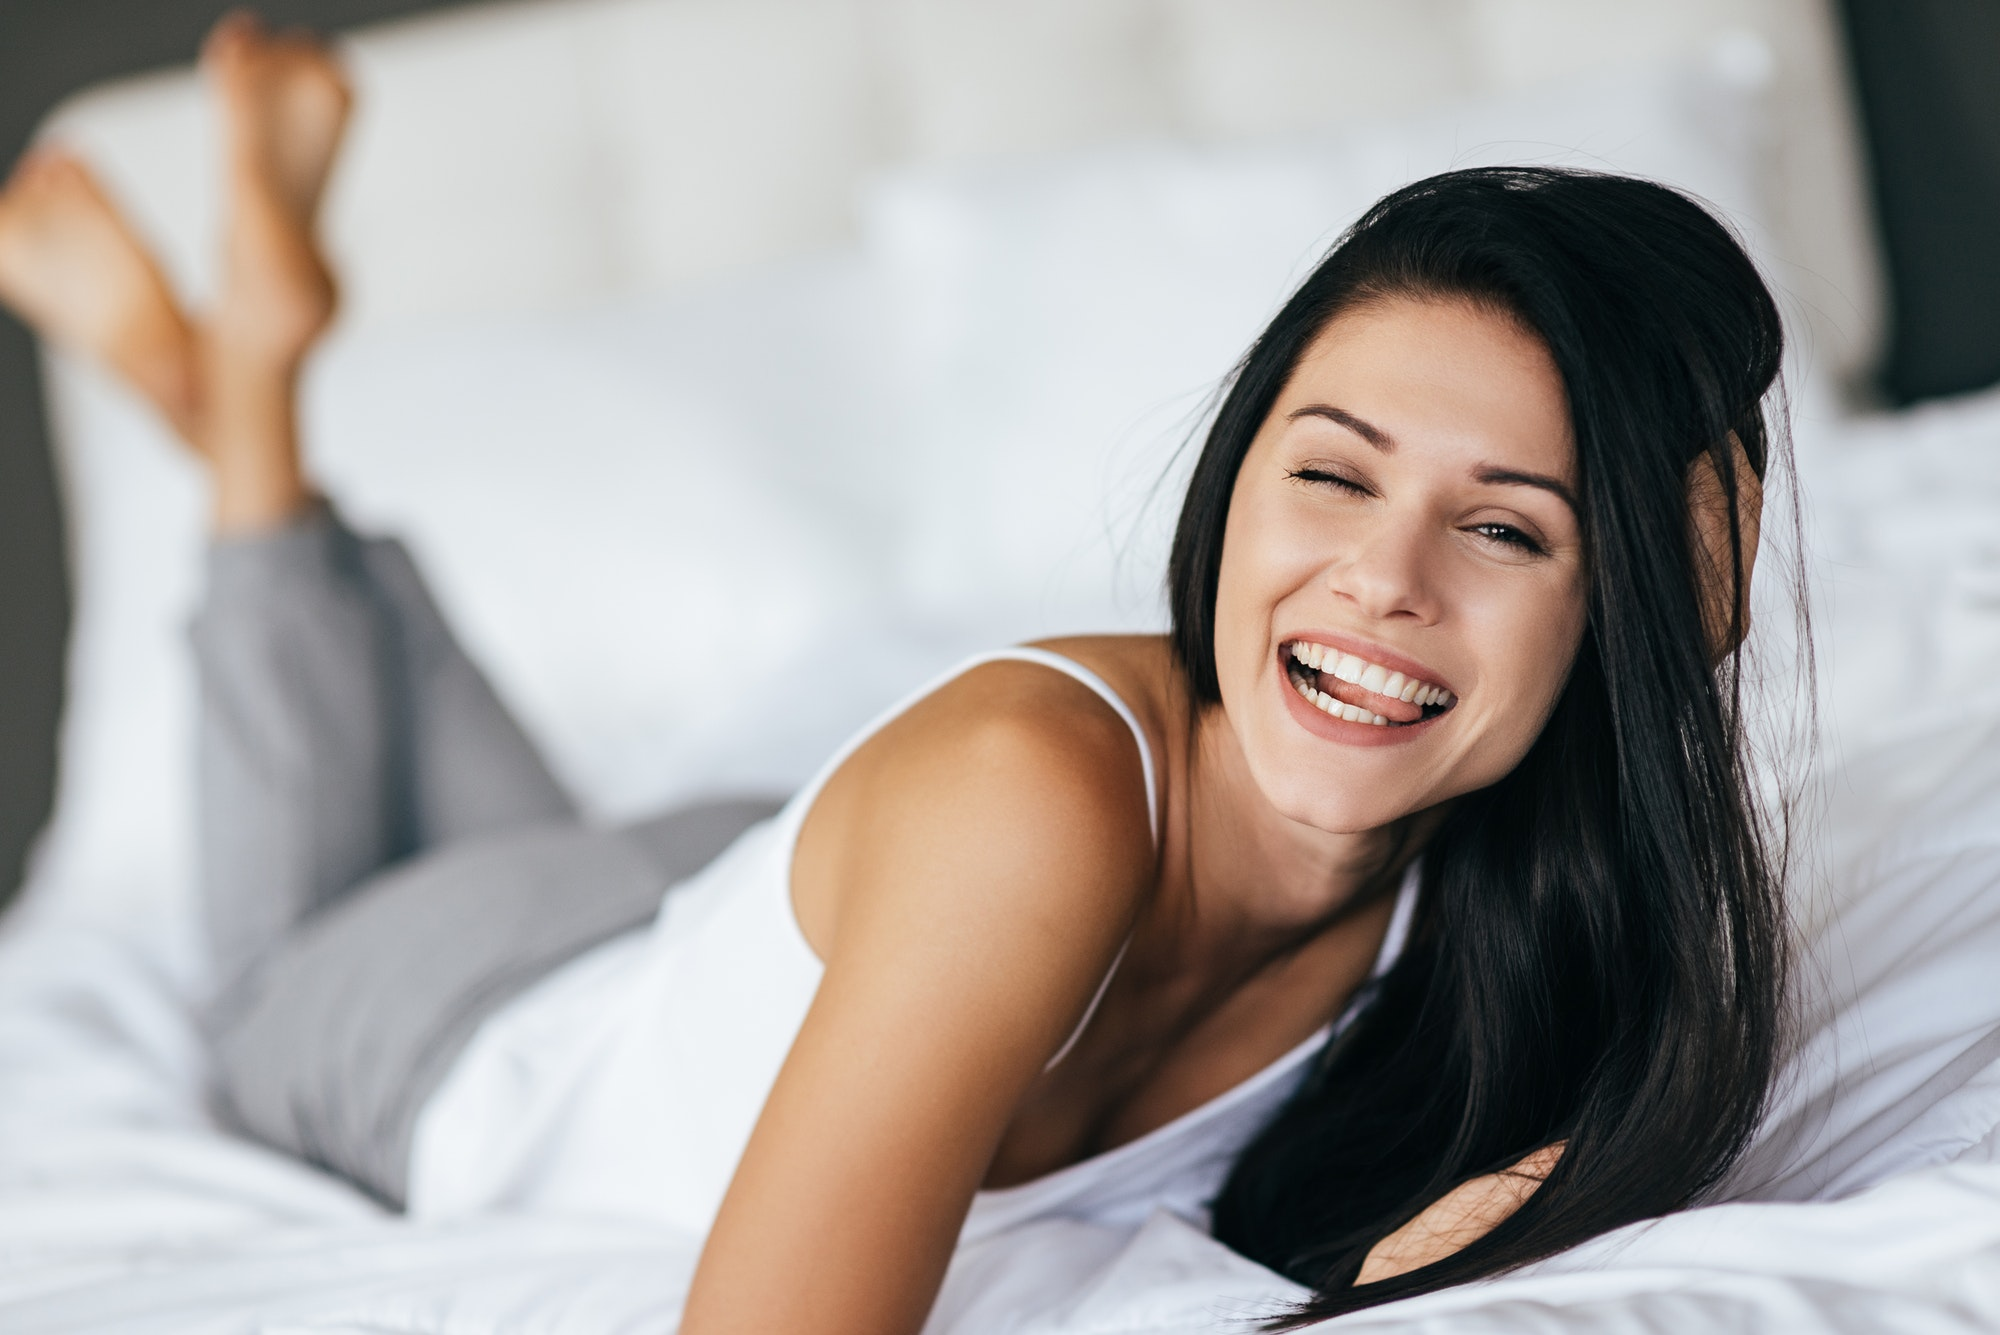 Making a face. Young woman making a face and smiling while lying on the bed at home